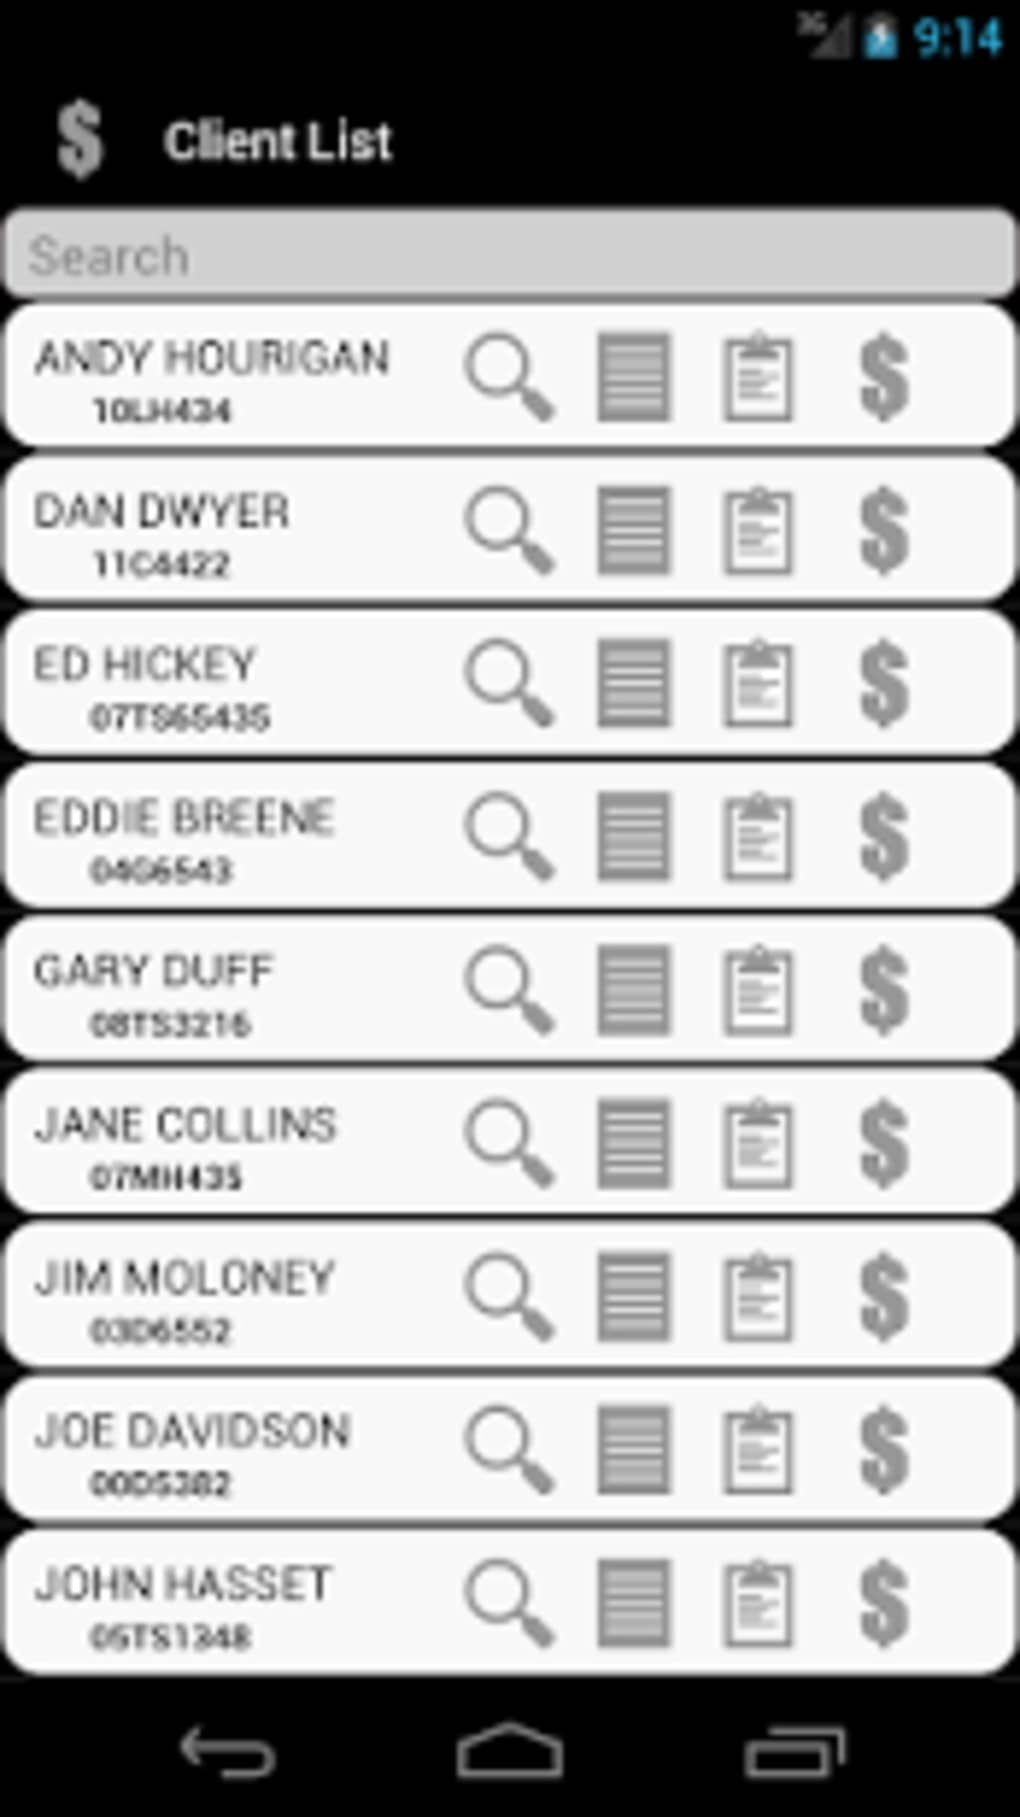 Auto Repair Bill for Android - Download